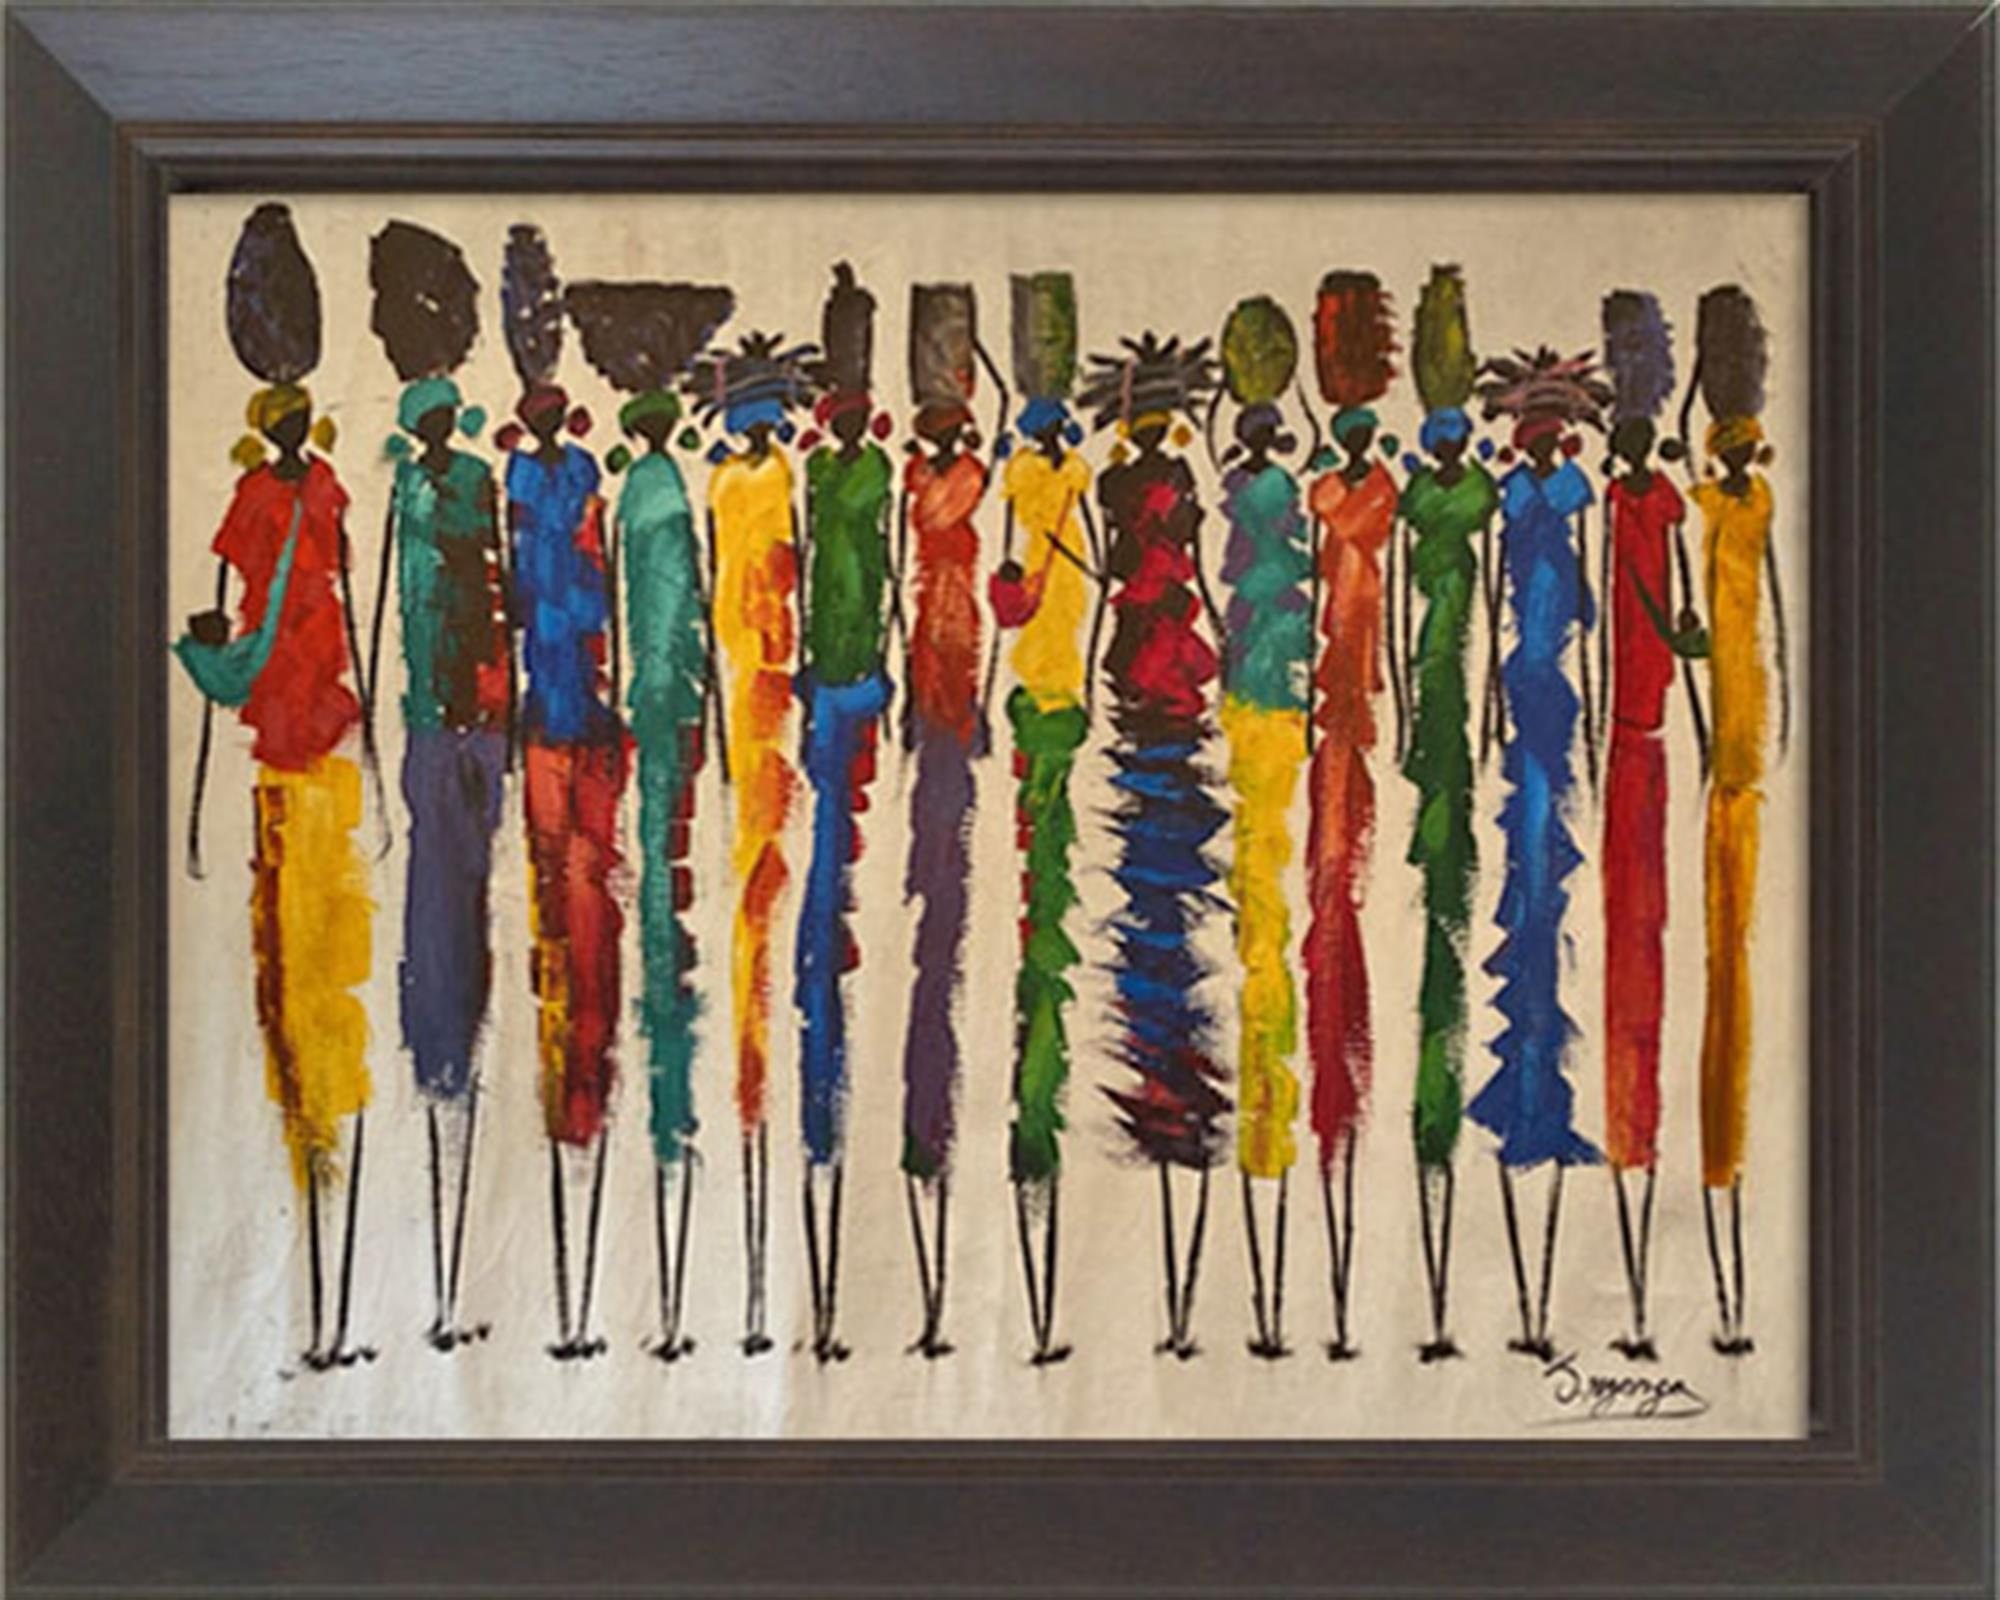 Painting in frame from Zambia